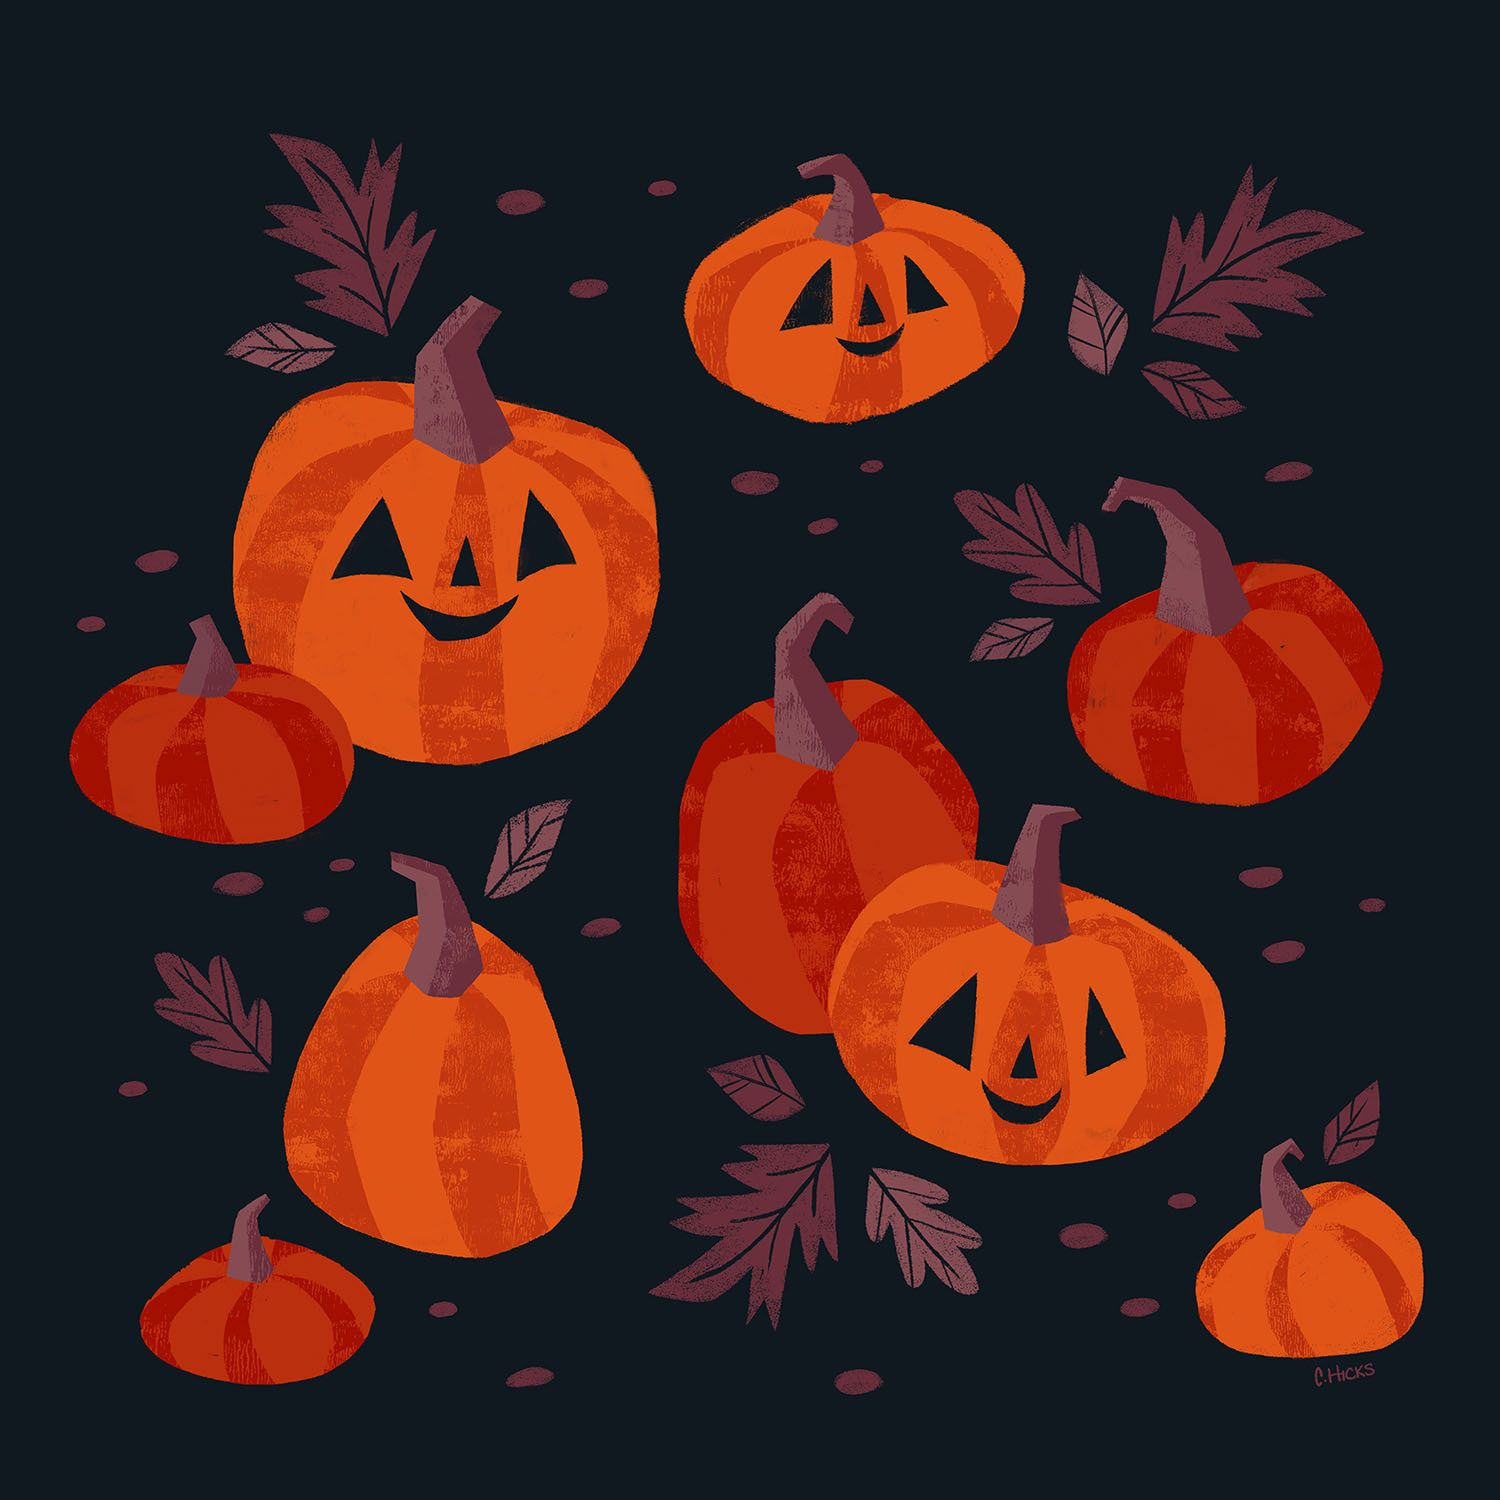 Pumpkins patch illustration Halloween illustration